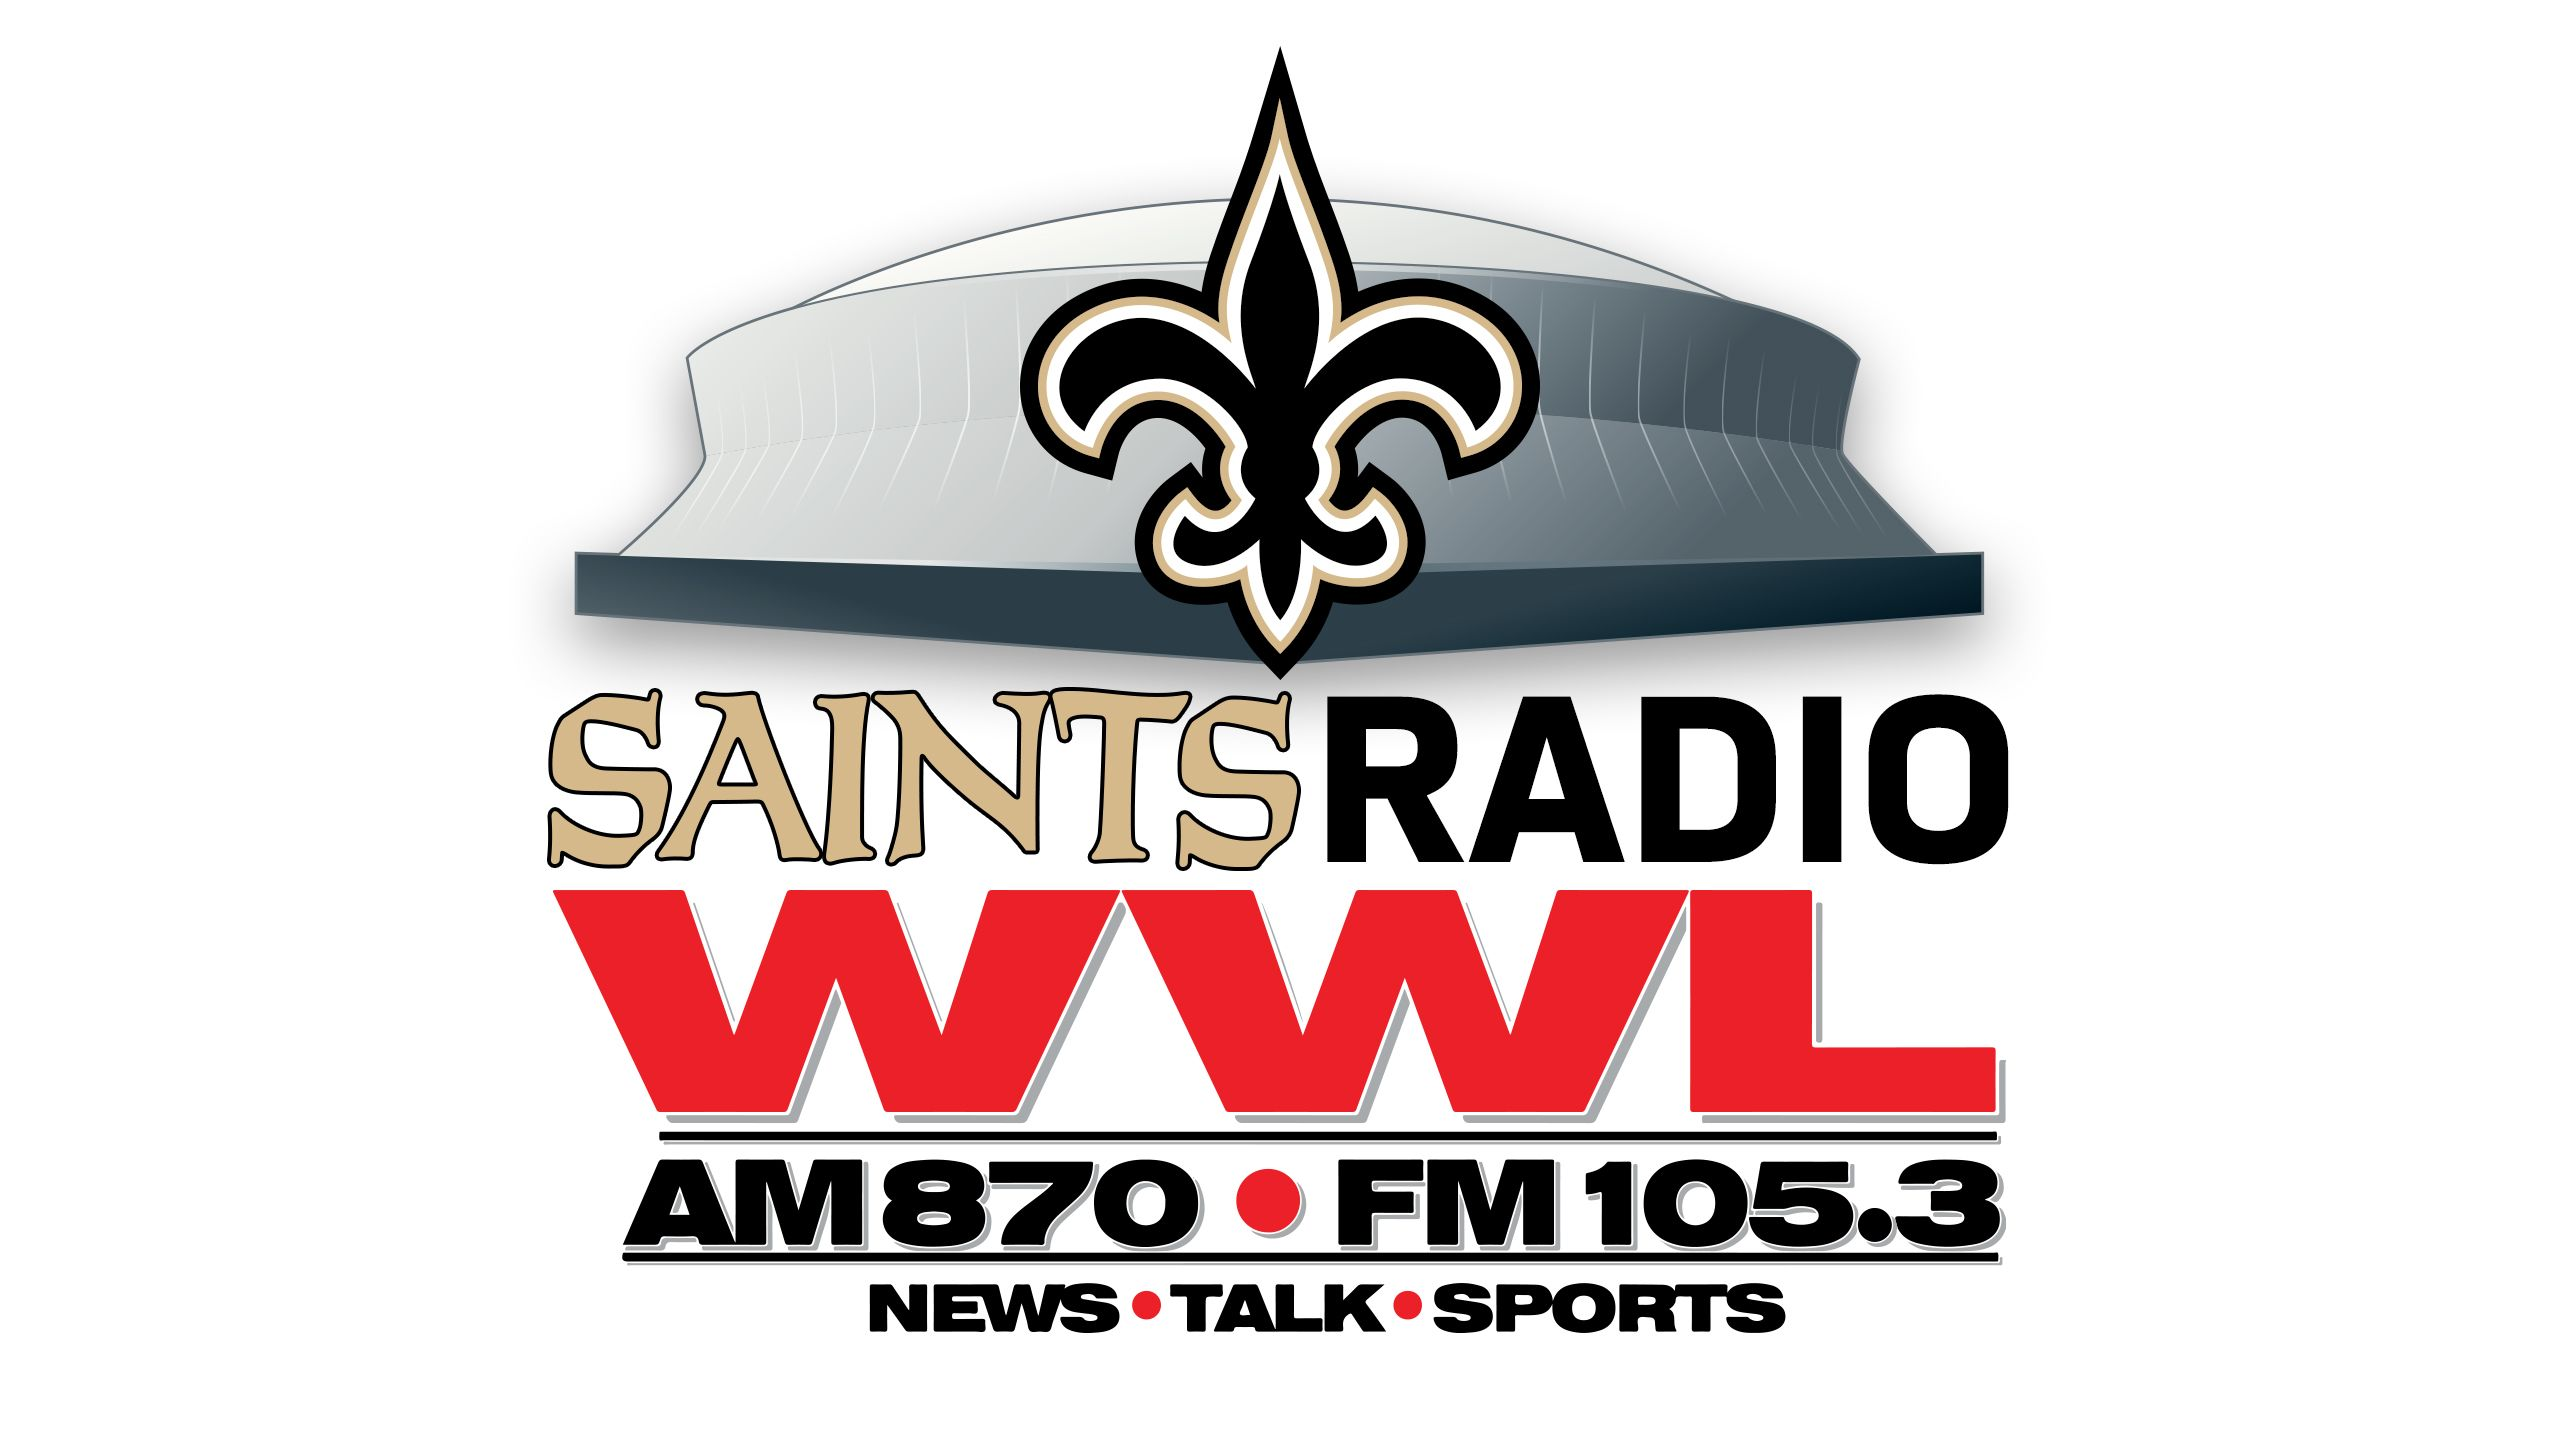 NEW ORLEANS SAINTS RADIO